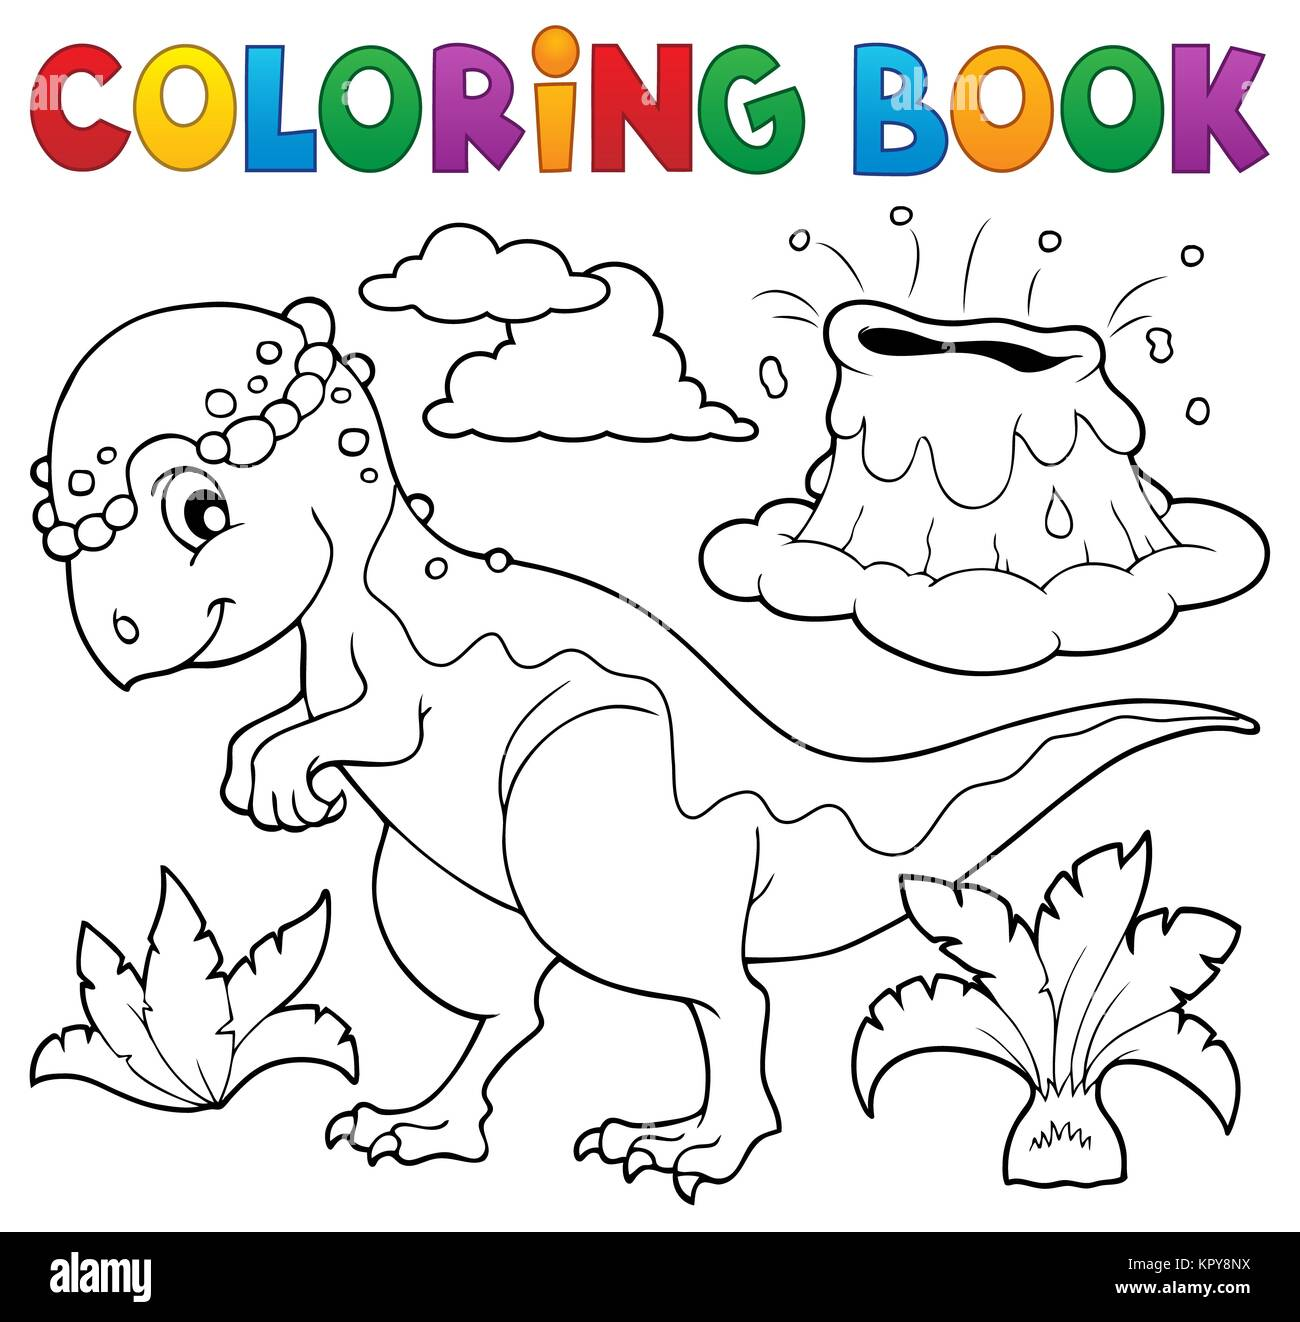 Coloring book dinosaur topic 5 - Stock Image